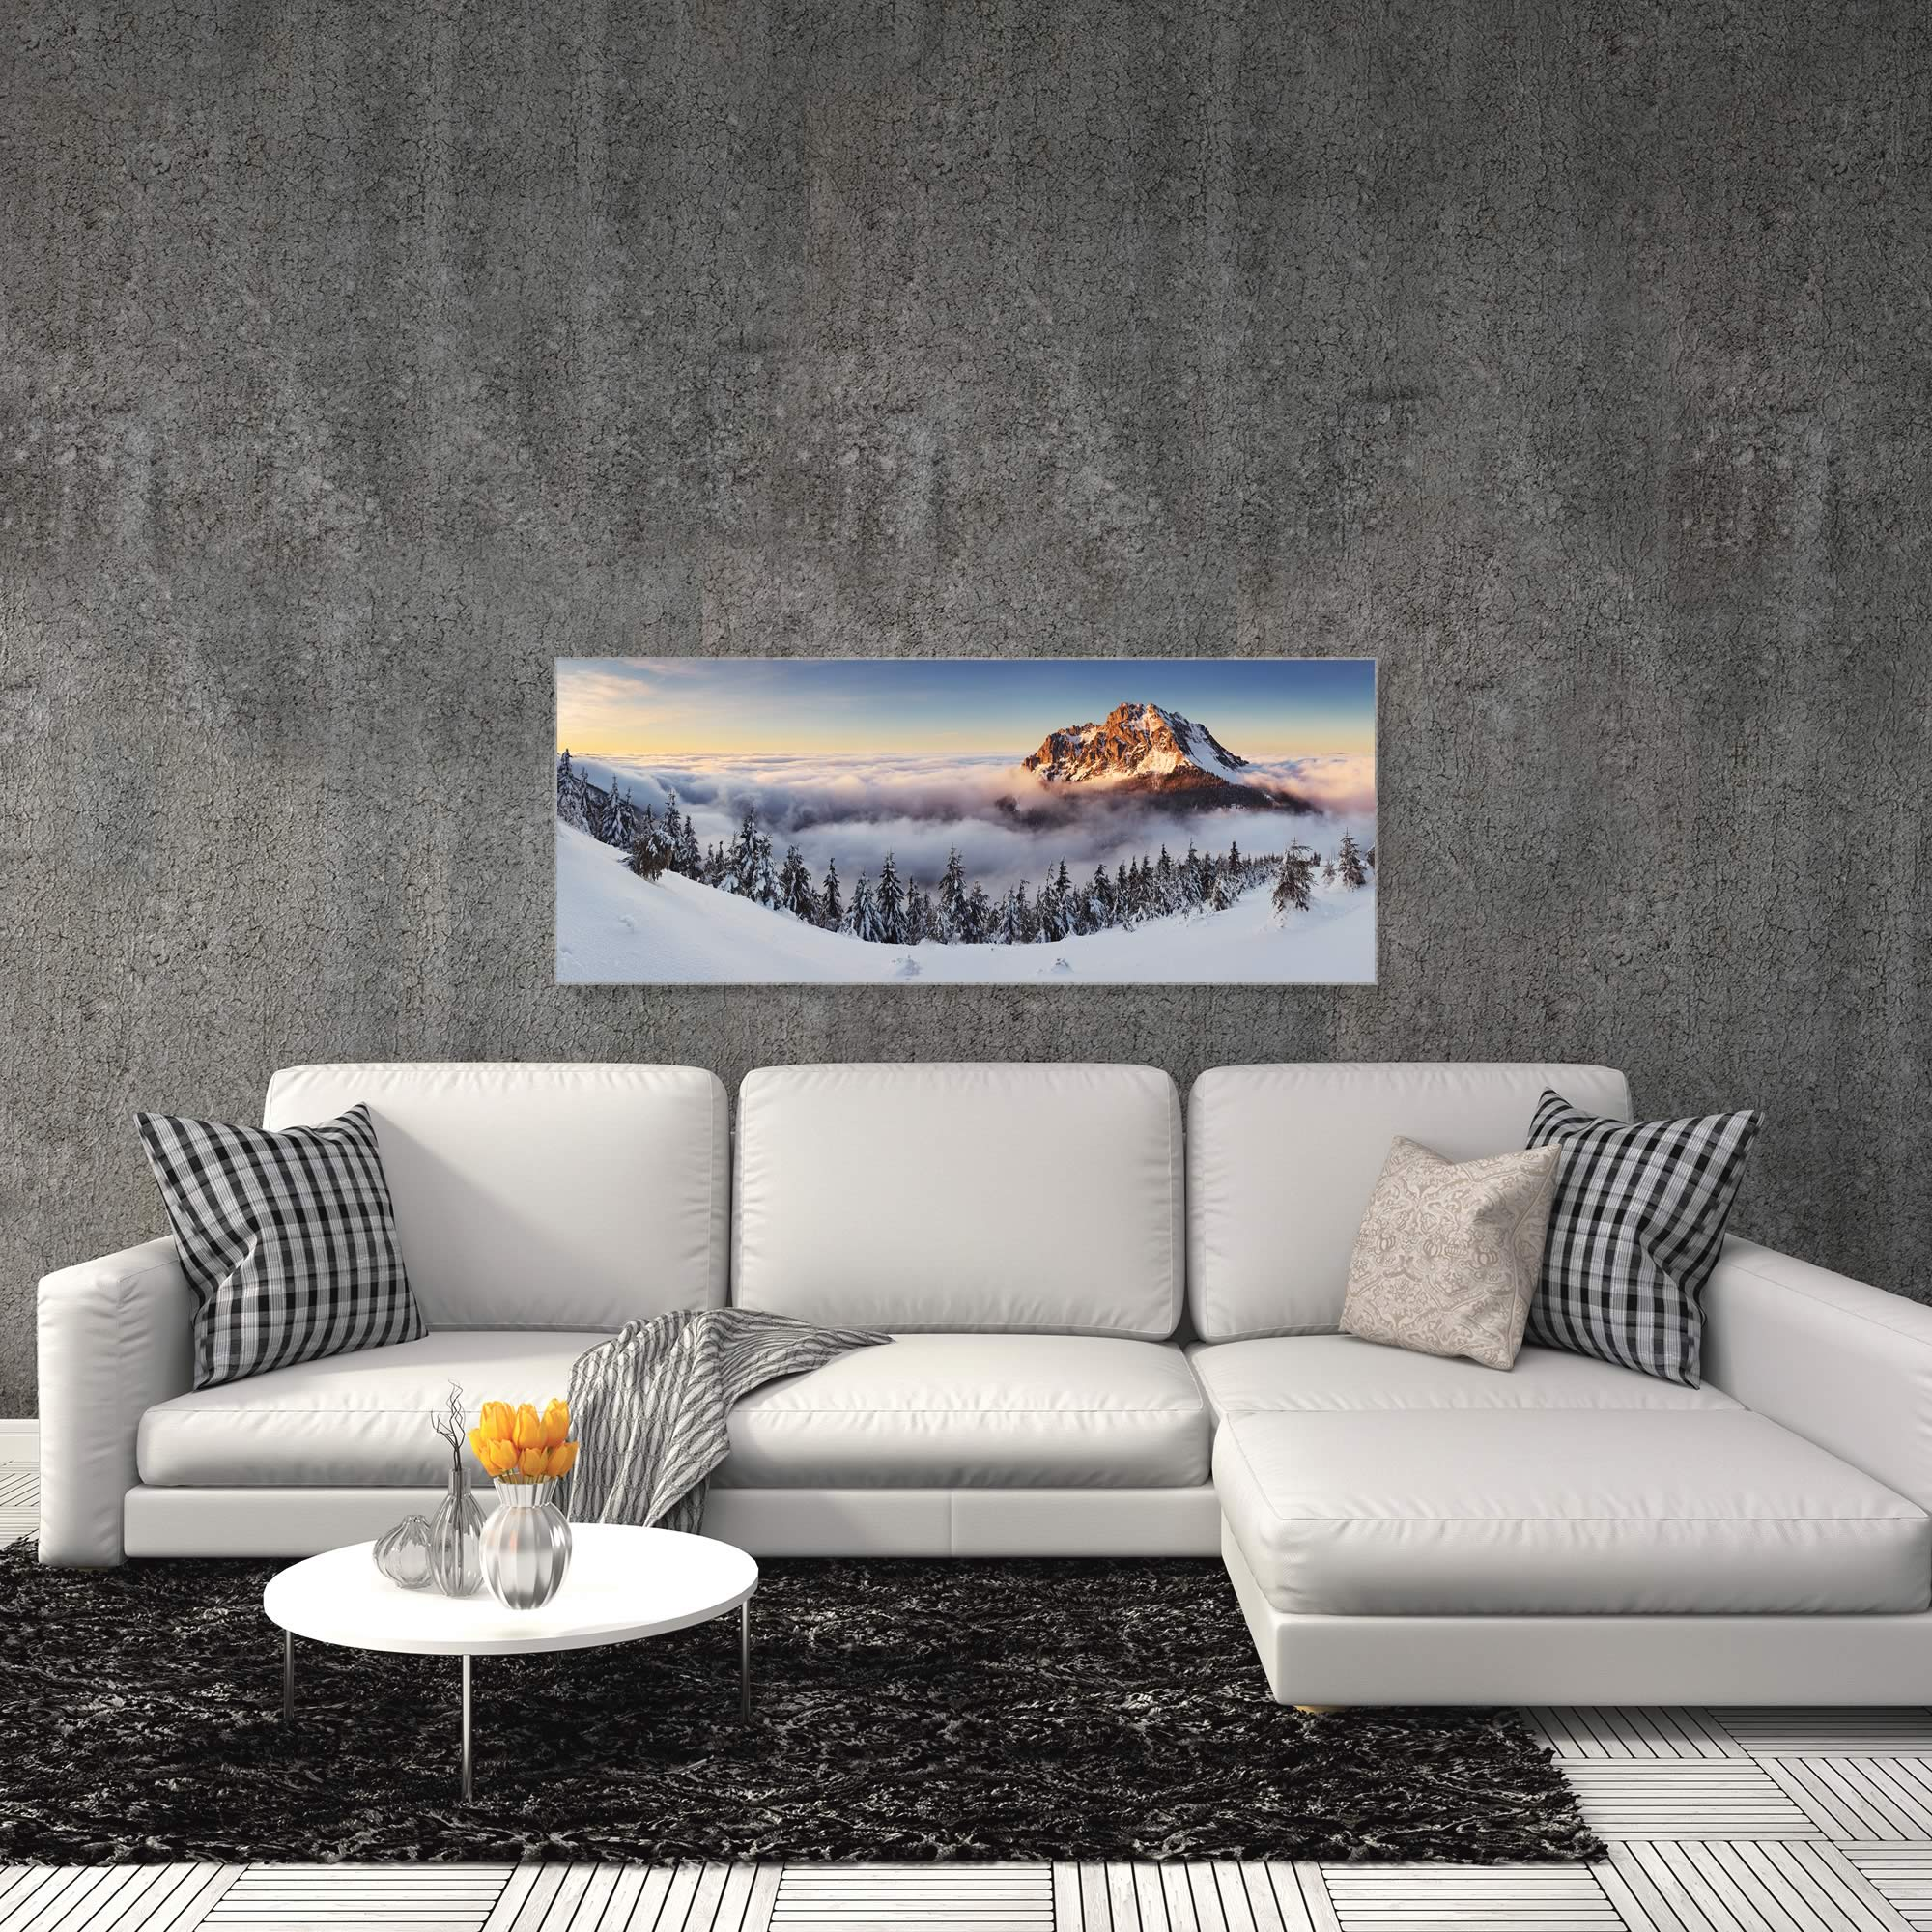 Golden Peak by Tomas Sereda - Snowy Mountains Art on Metal or Acrylic - Alternate View 3